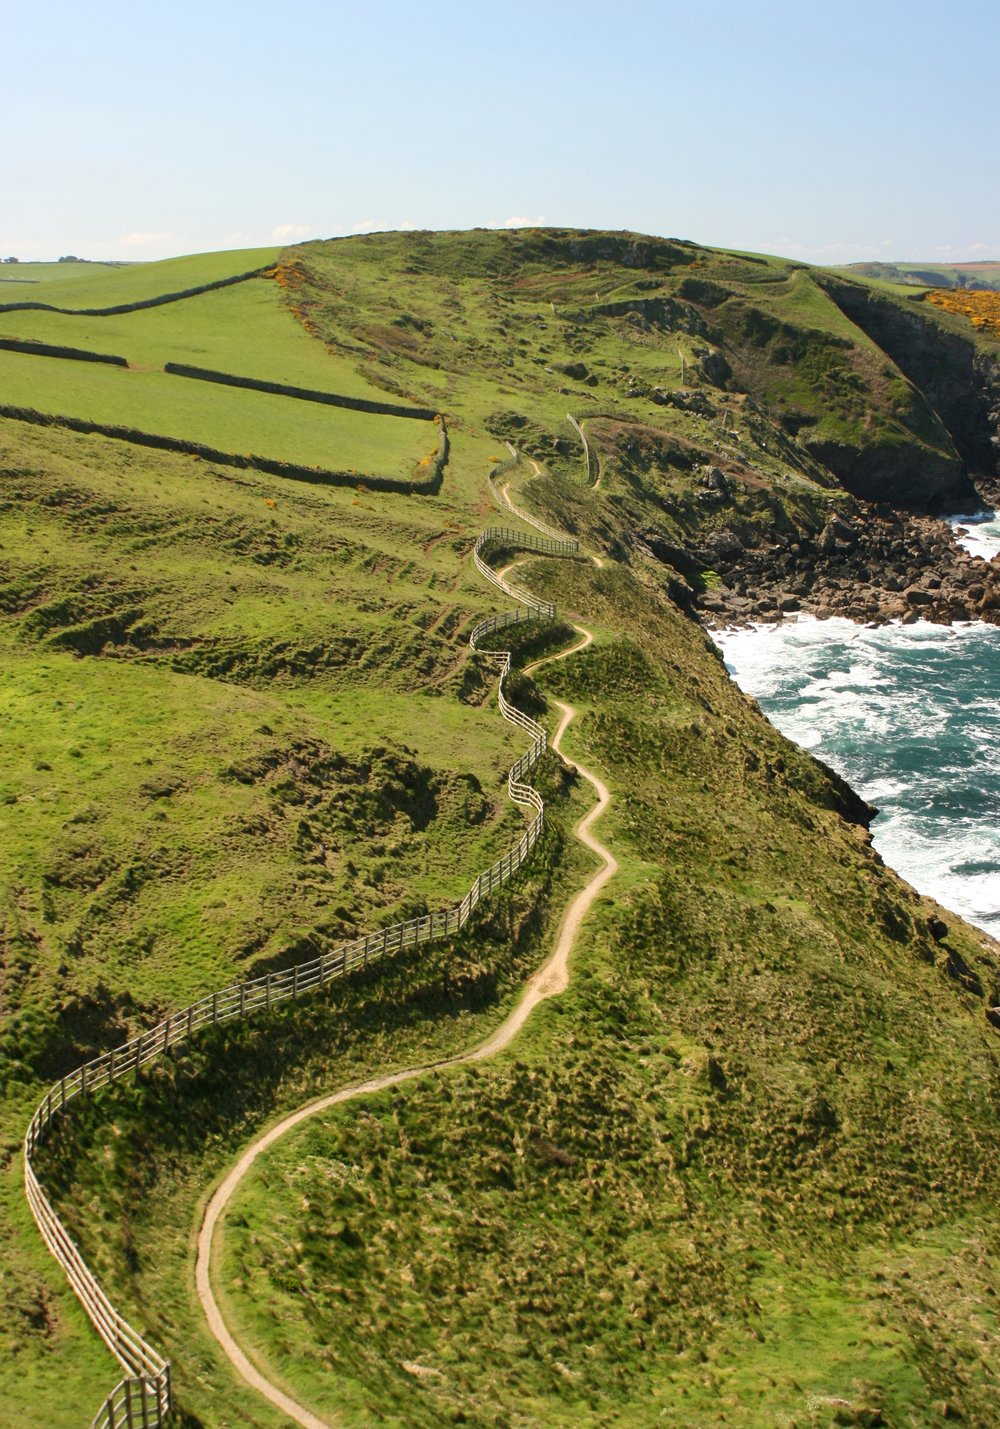 The South West Coast Path is under pressure from coastal change and erosion. Photo: Dave Mathews